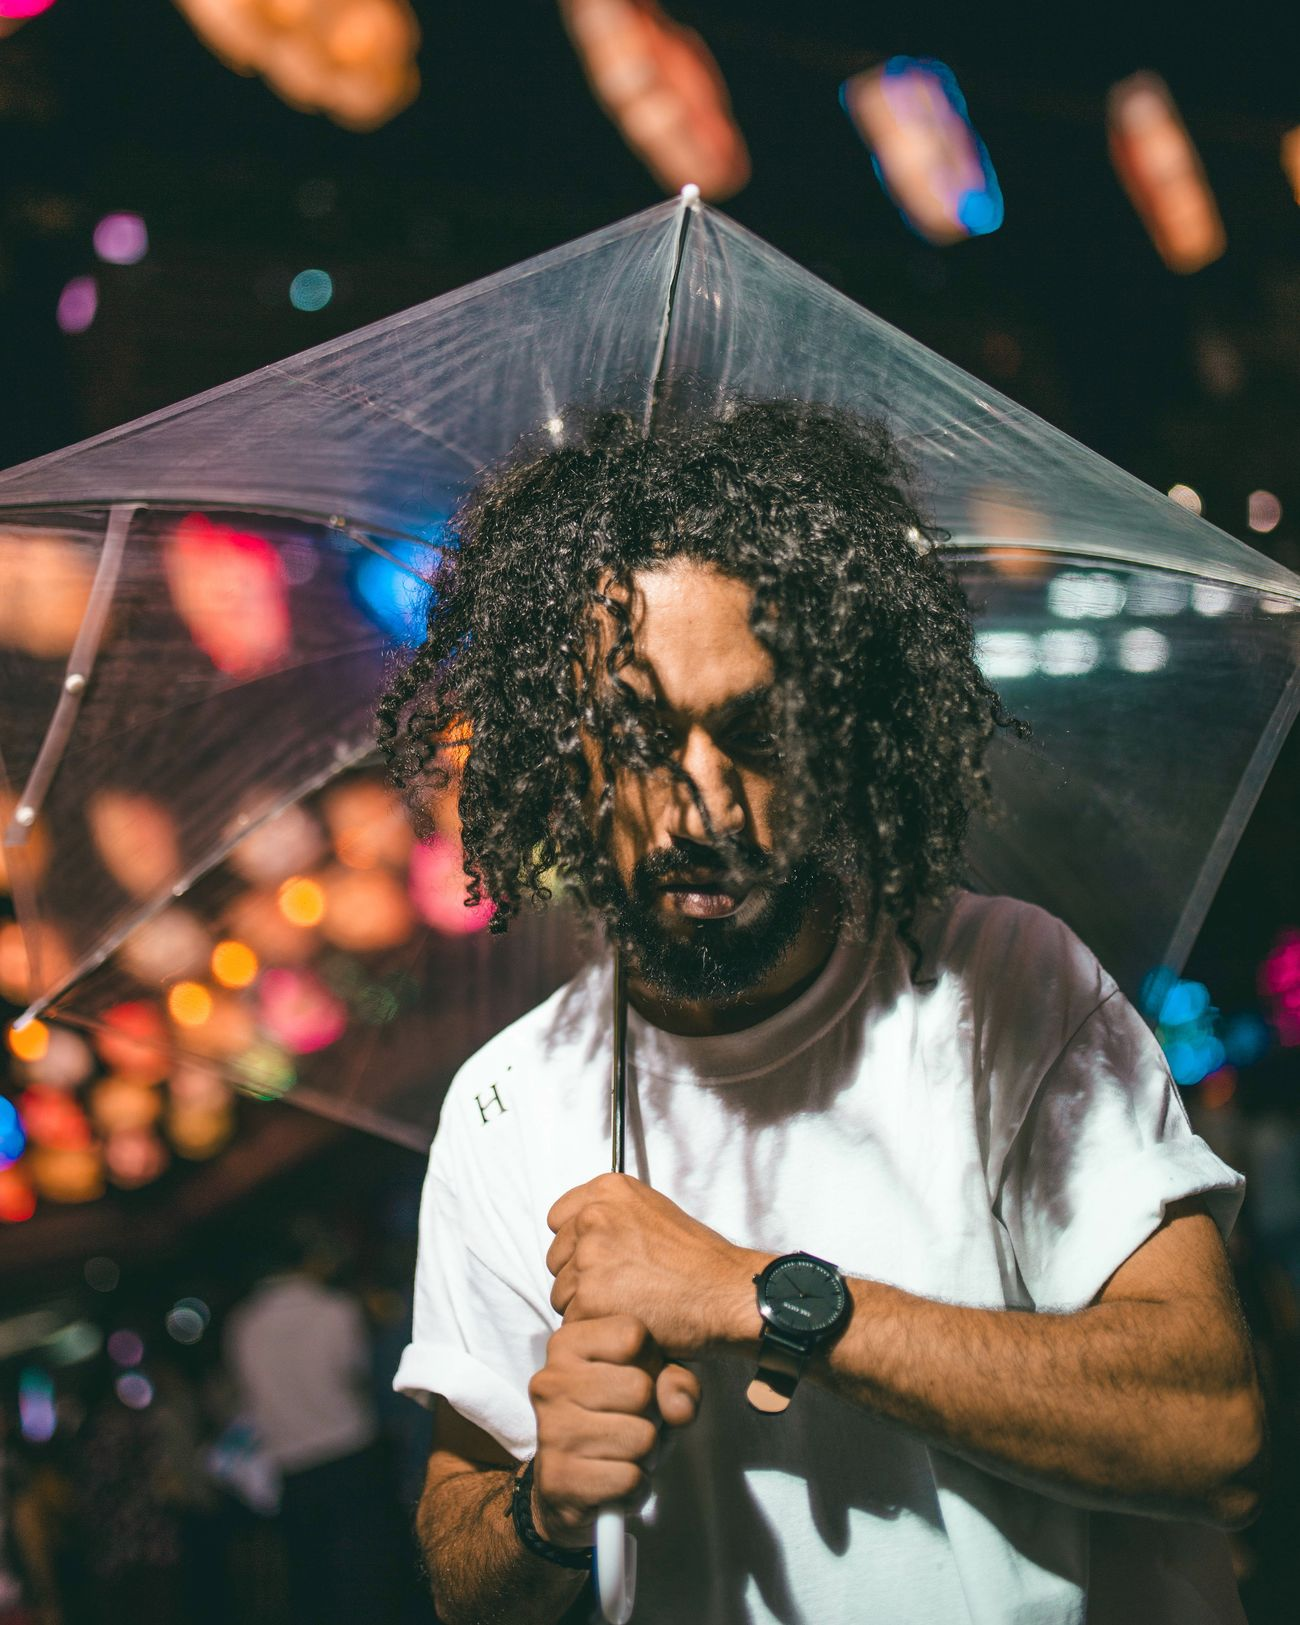 City lights alive One Man Only Illuminated Nightlife Close-up Beautiful People Portraits Of EyeEm Bokeh Photography Bokeh Lights Light Collection Street Lights Street Photography Street Colorful Vibrant Color